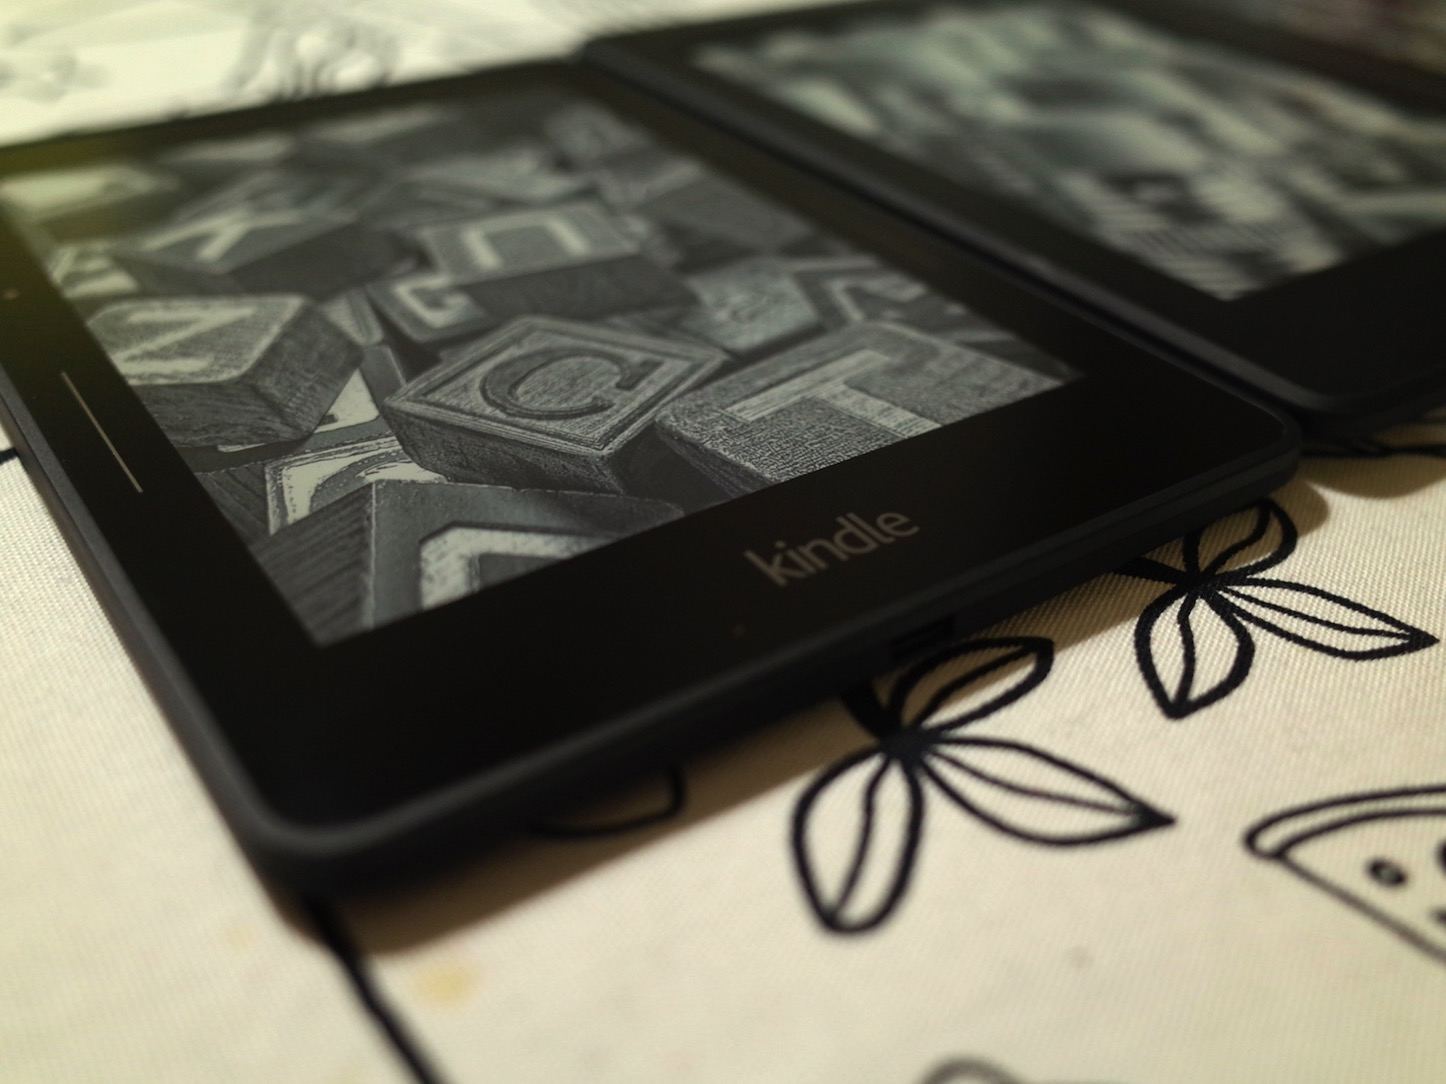 Kindle voyage new model rumor